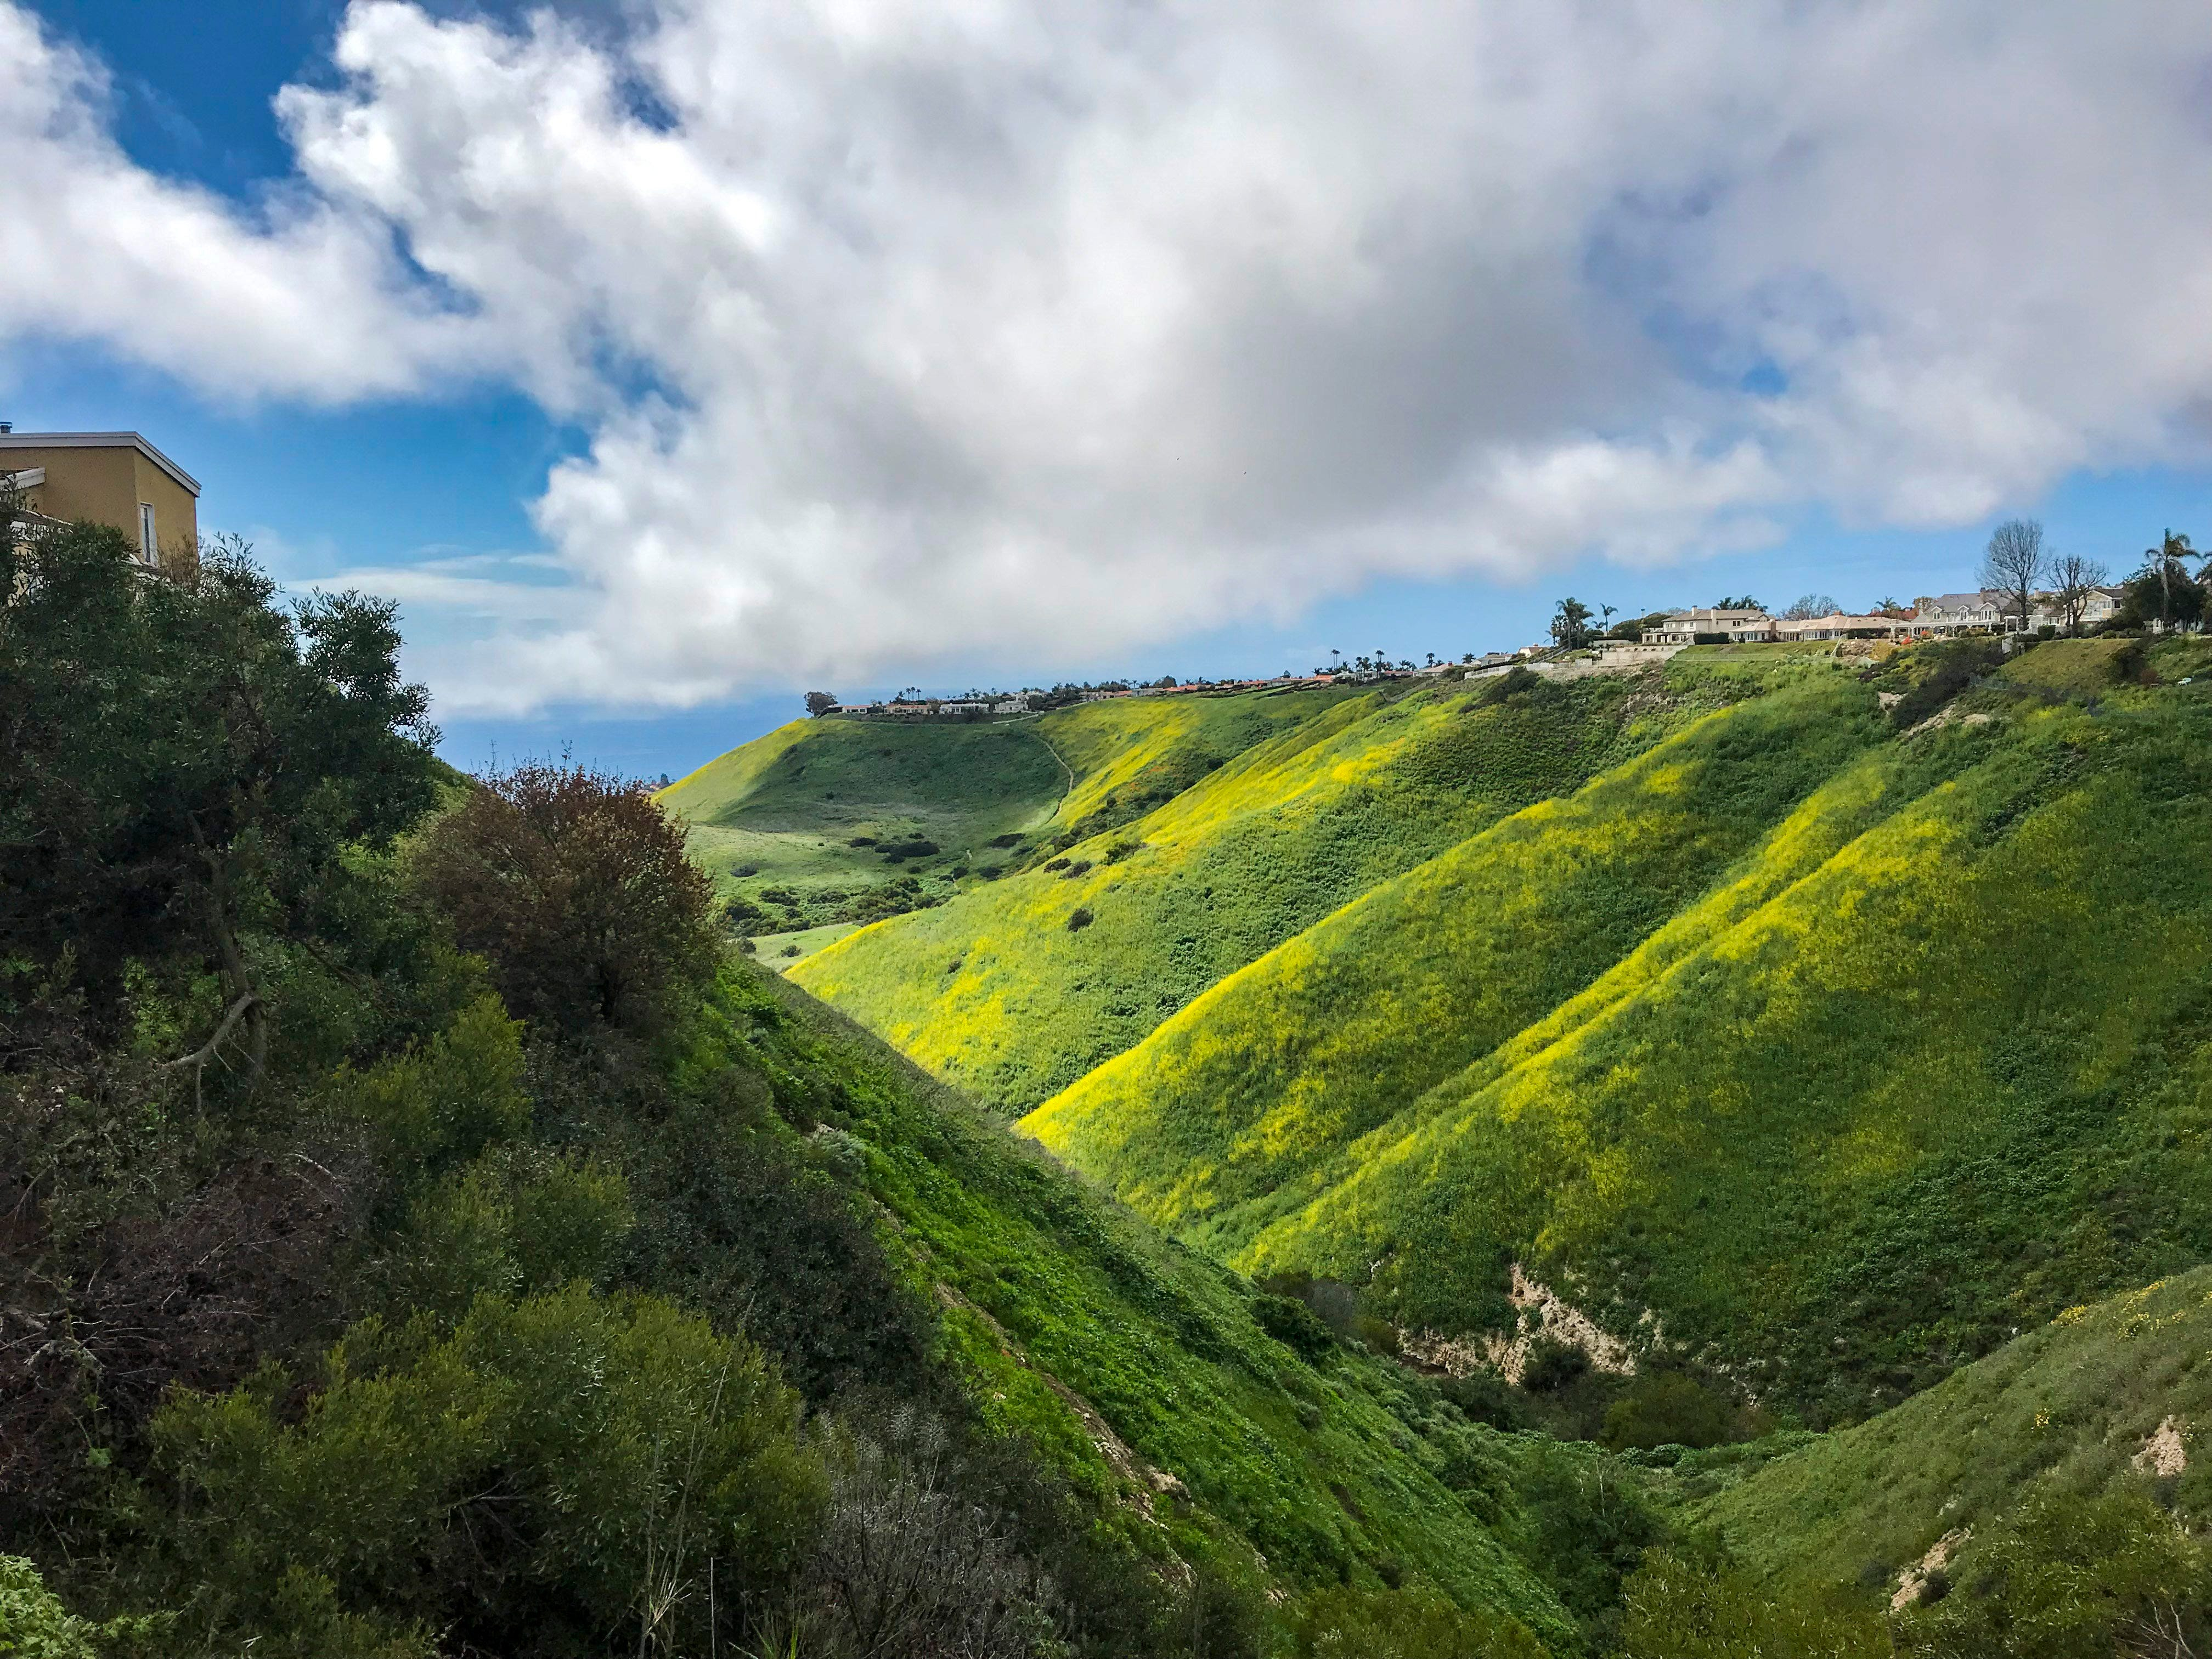 Homes line one of the canyons in Rancho Palos Verdes. The many acres of open space in the city provide breathtaking views and public access to wild places between city subdivisions, but the vegetation poses a substantial fire risk.